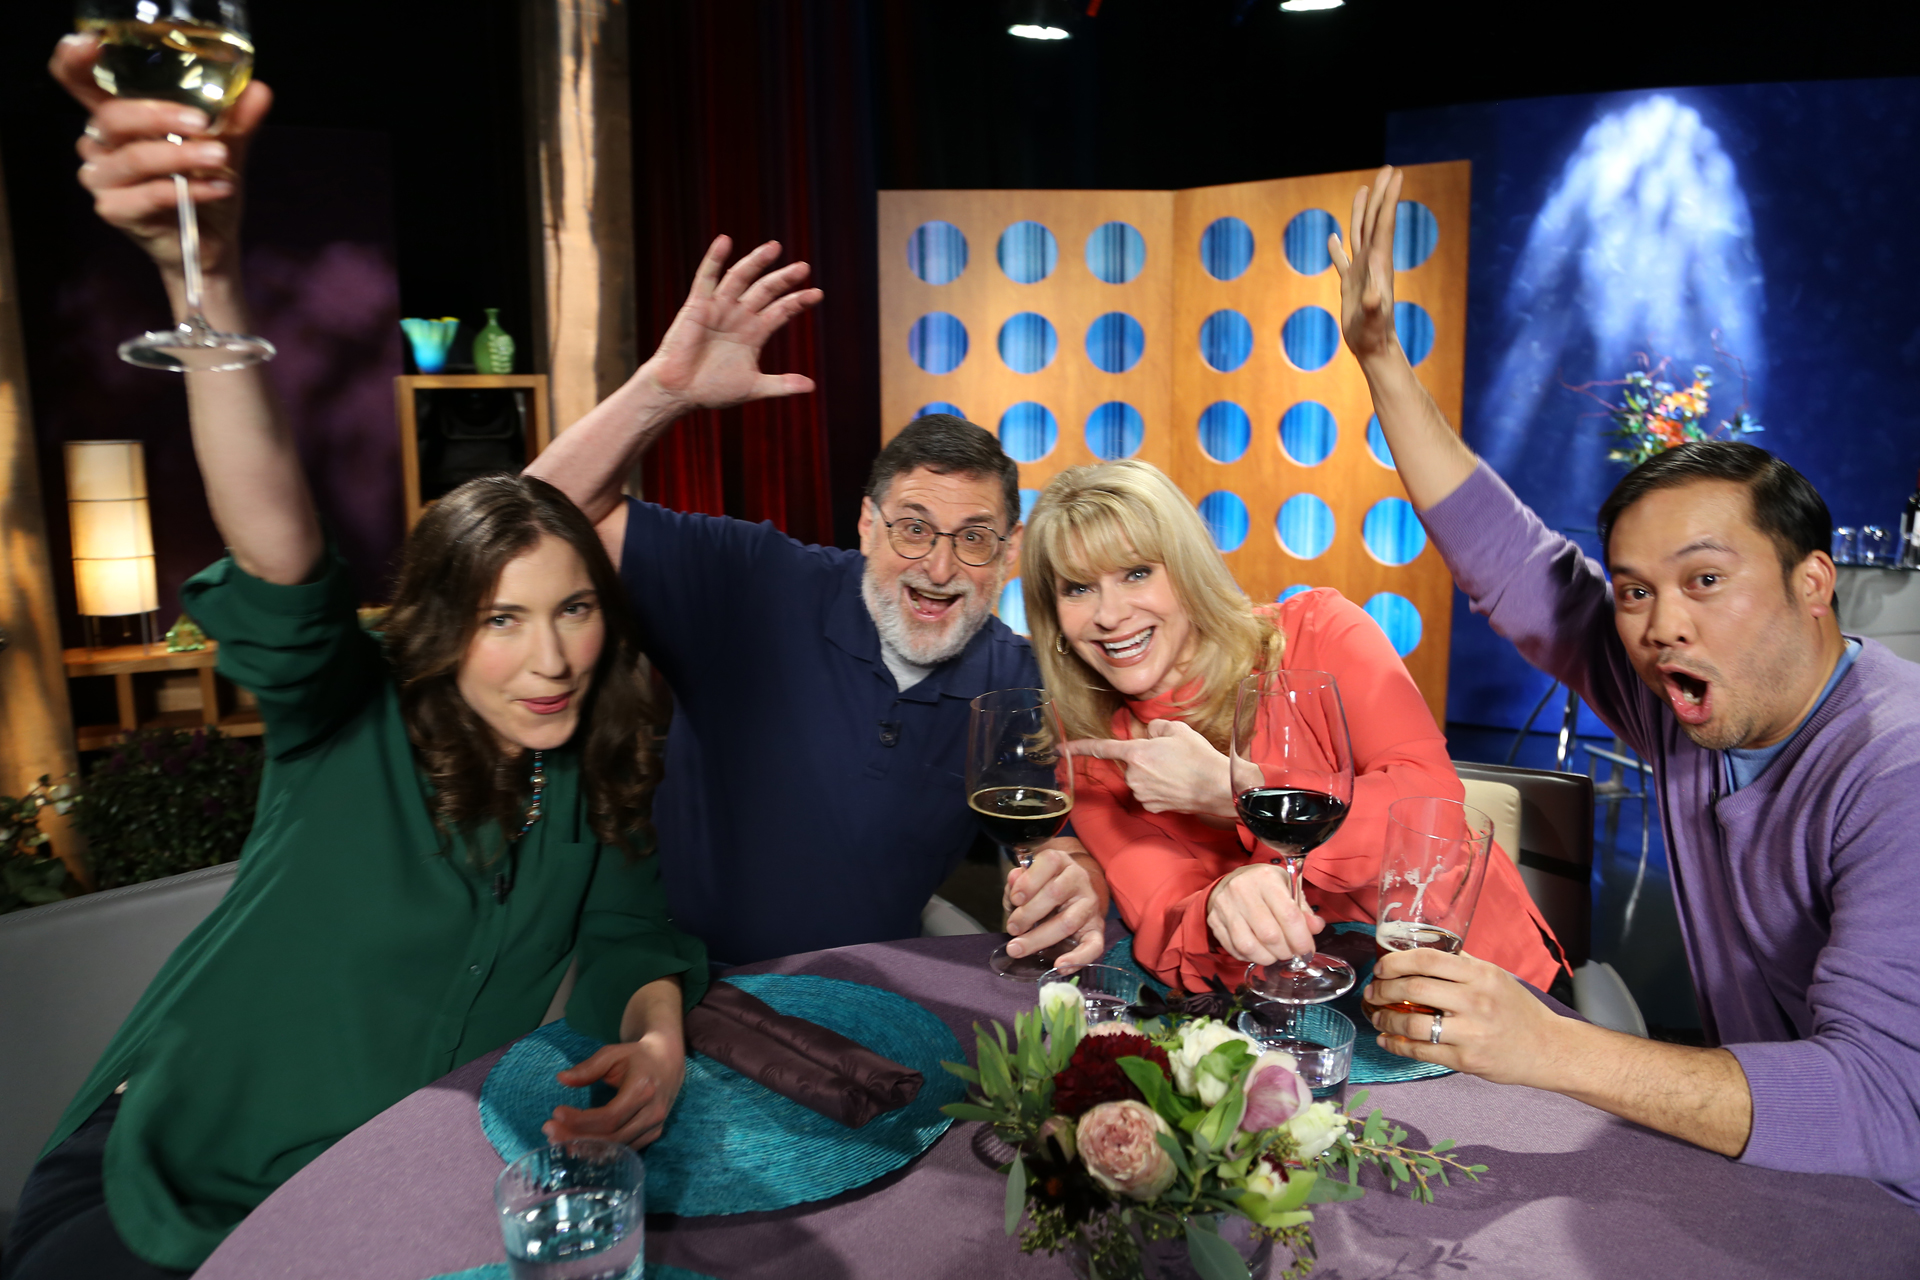 Host Leslie Sbrocco and guests having fun on the set of season 12 episode 4.